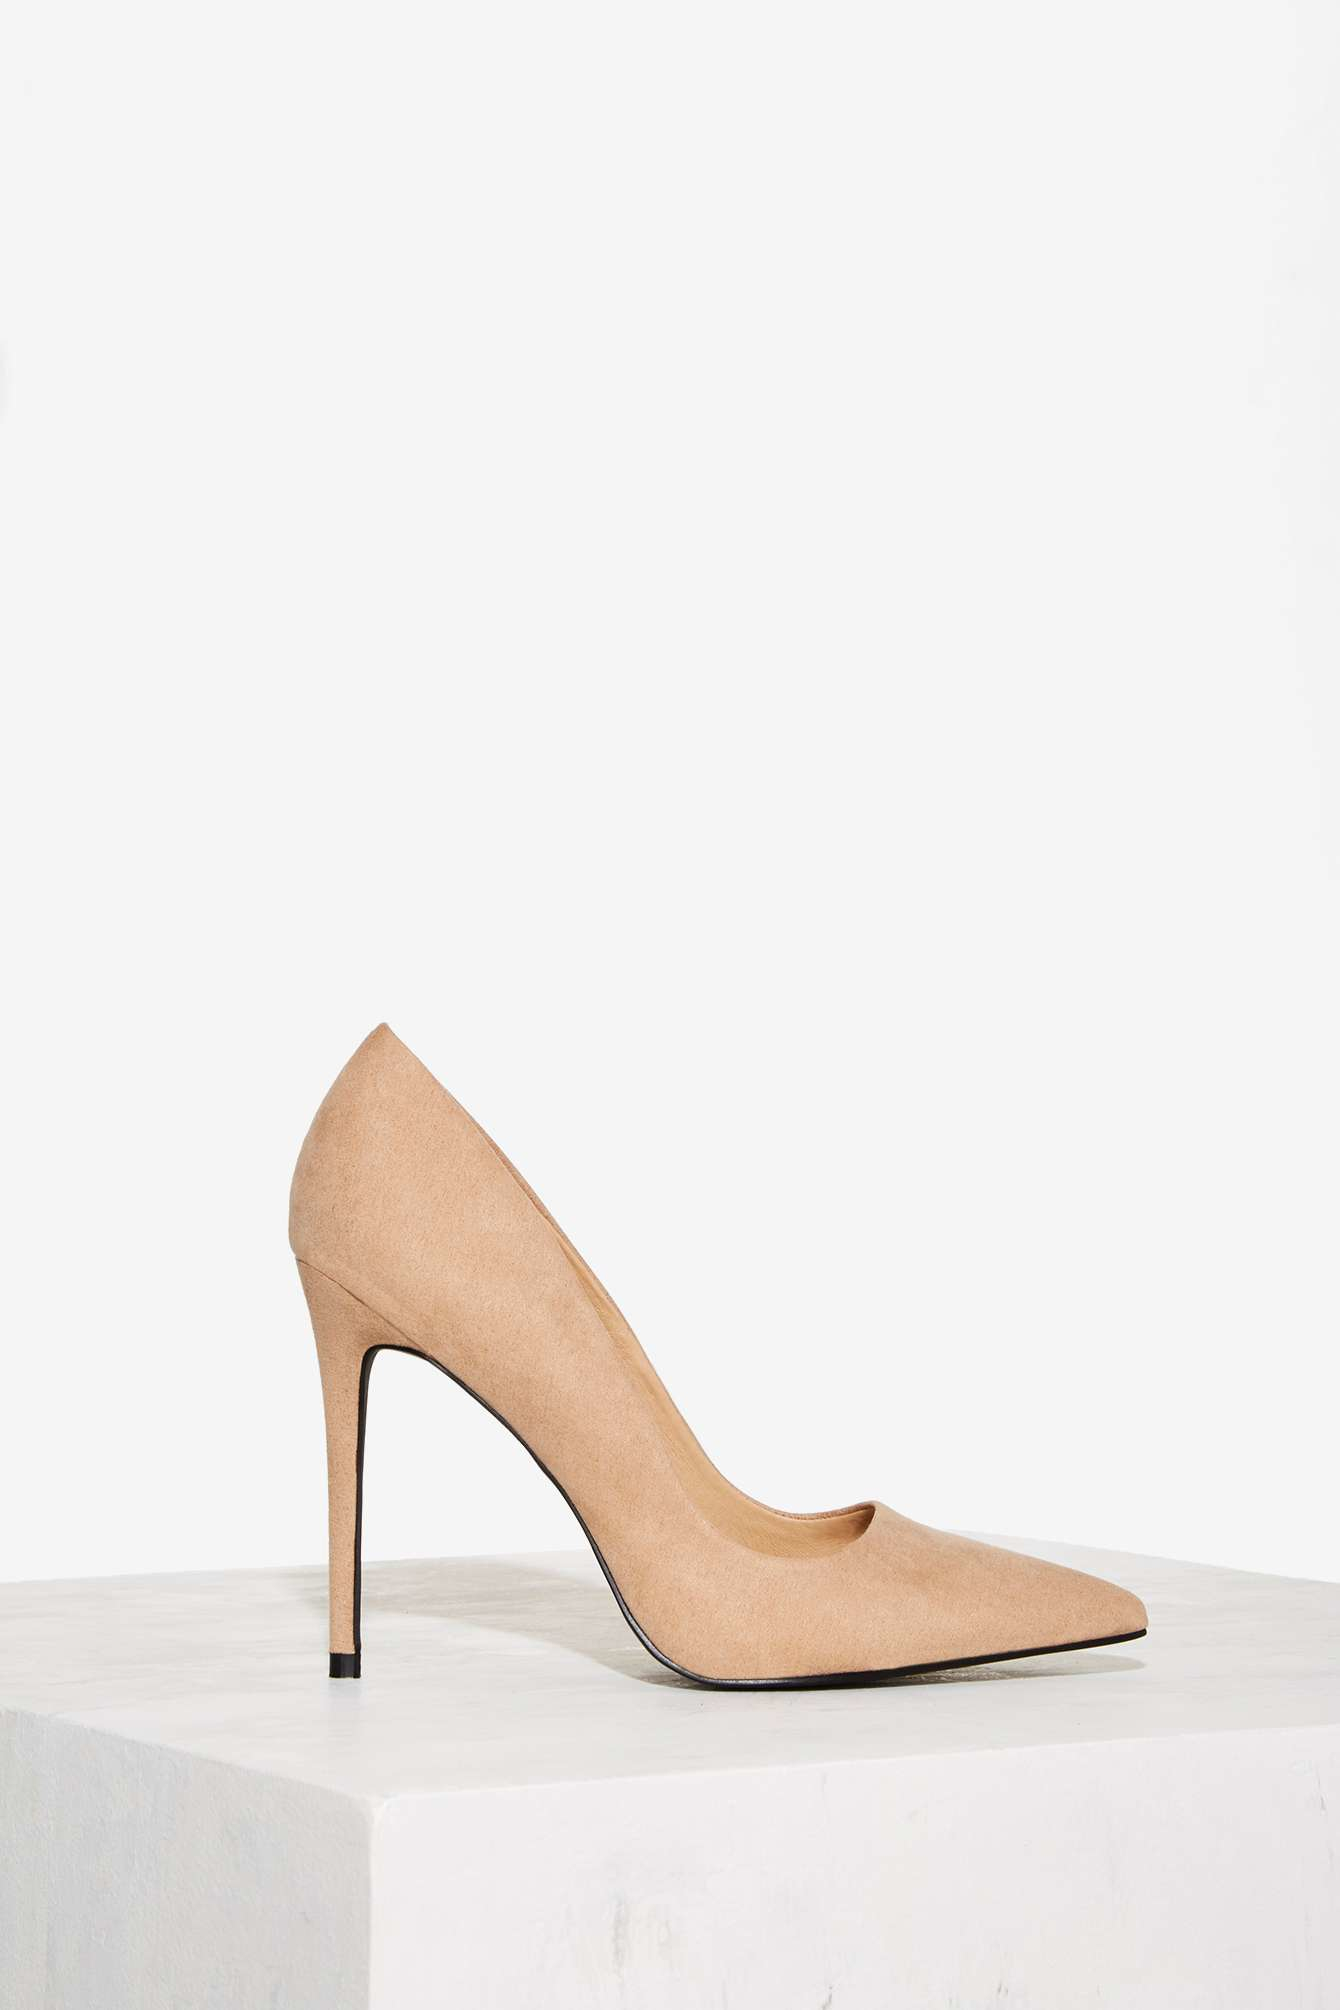 Nasty Gal Play It Cool Stiletto Pump - Nude In Natural  Lyst-3511